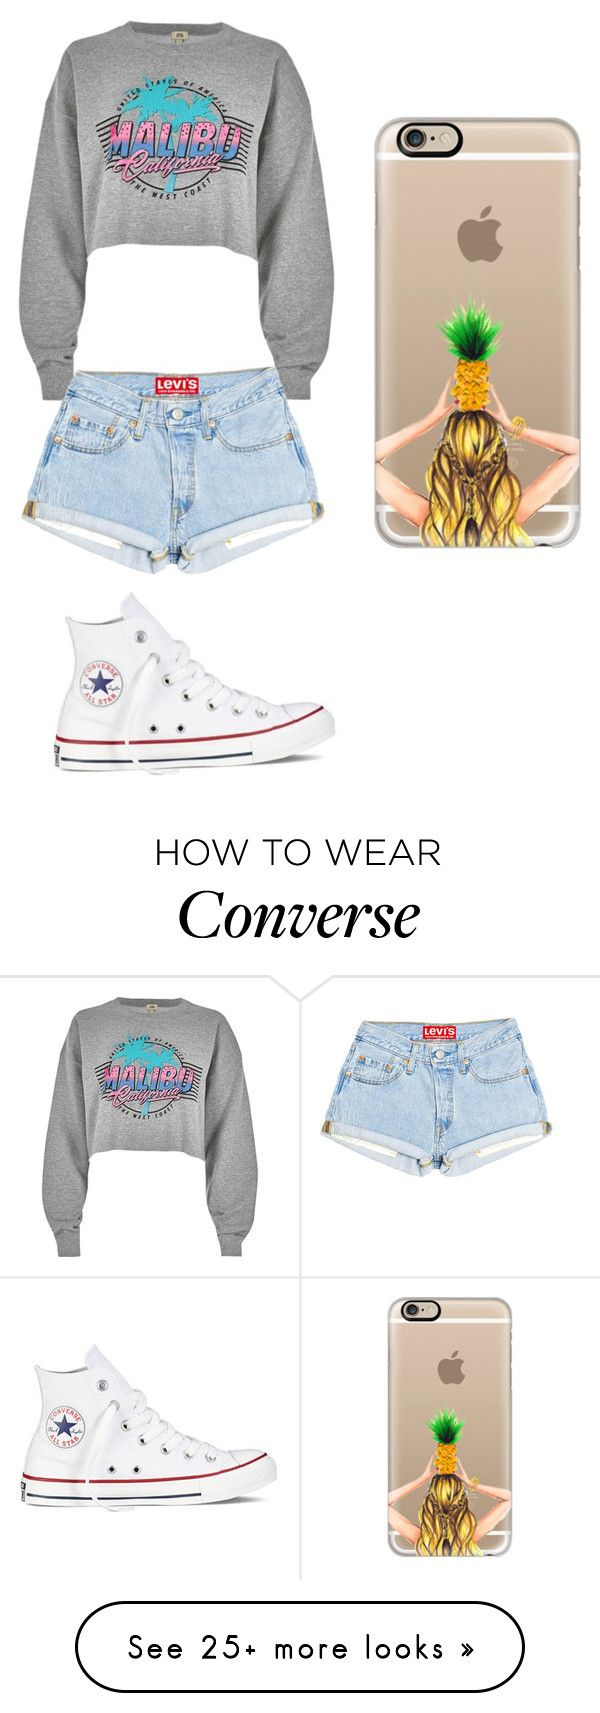 """"""""""" by mariam-dekeyrel on Polyvore featuring River Island, Converse and Casetify"""